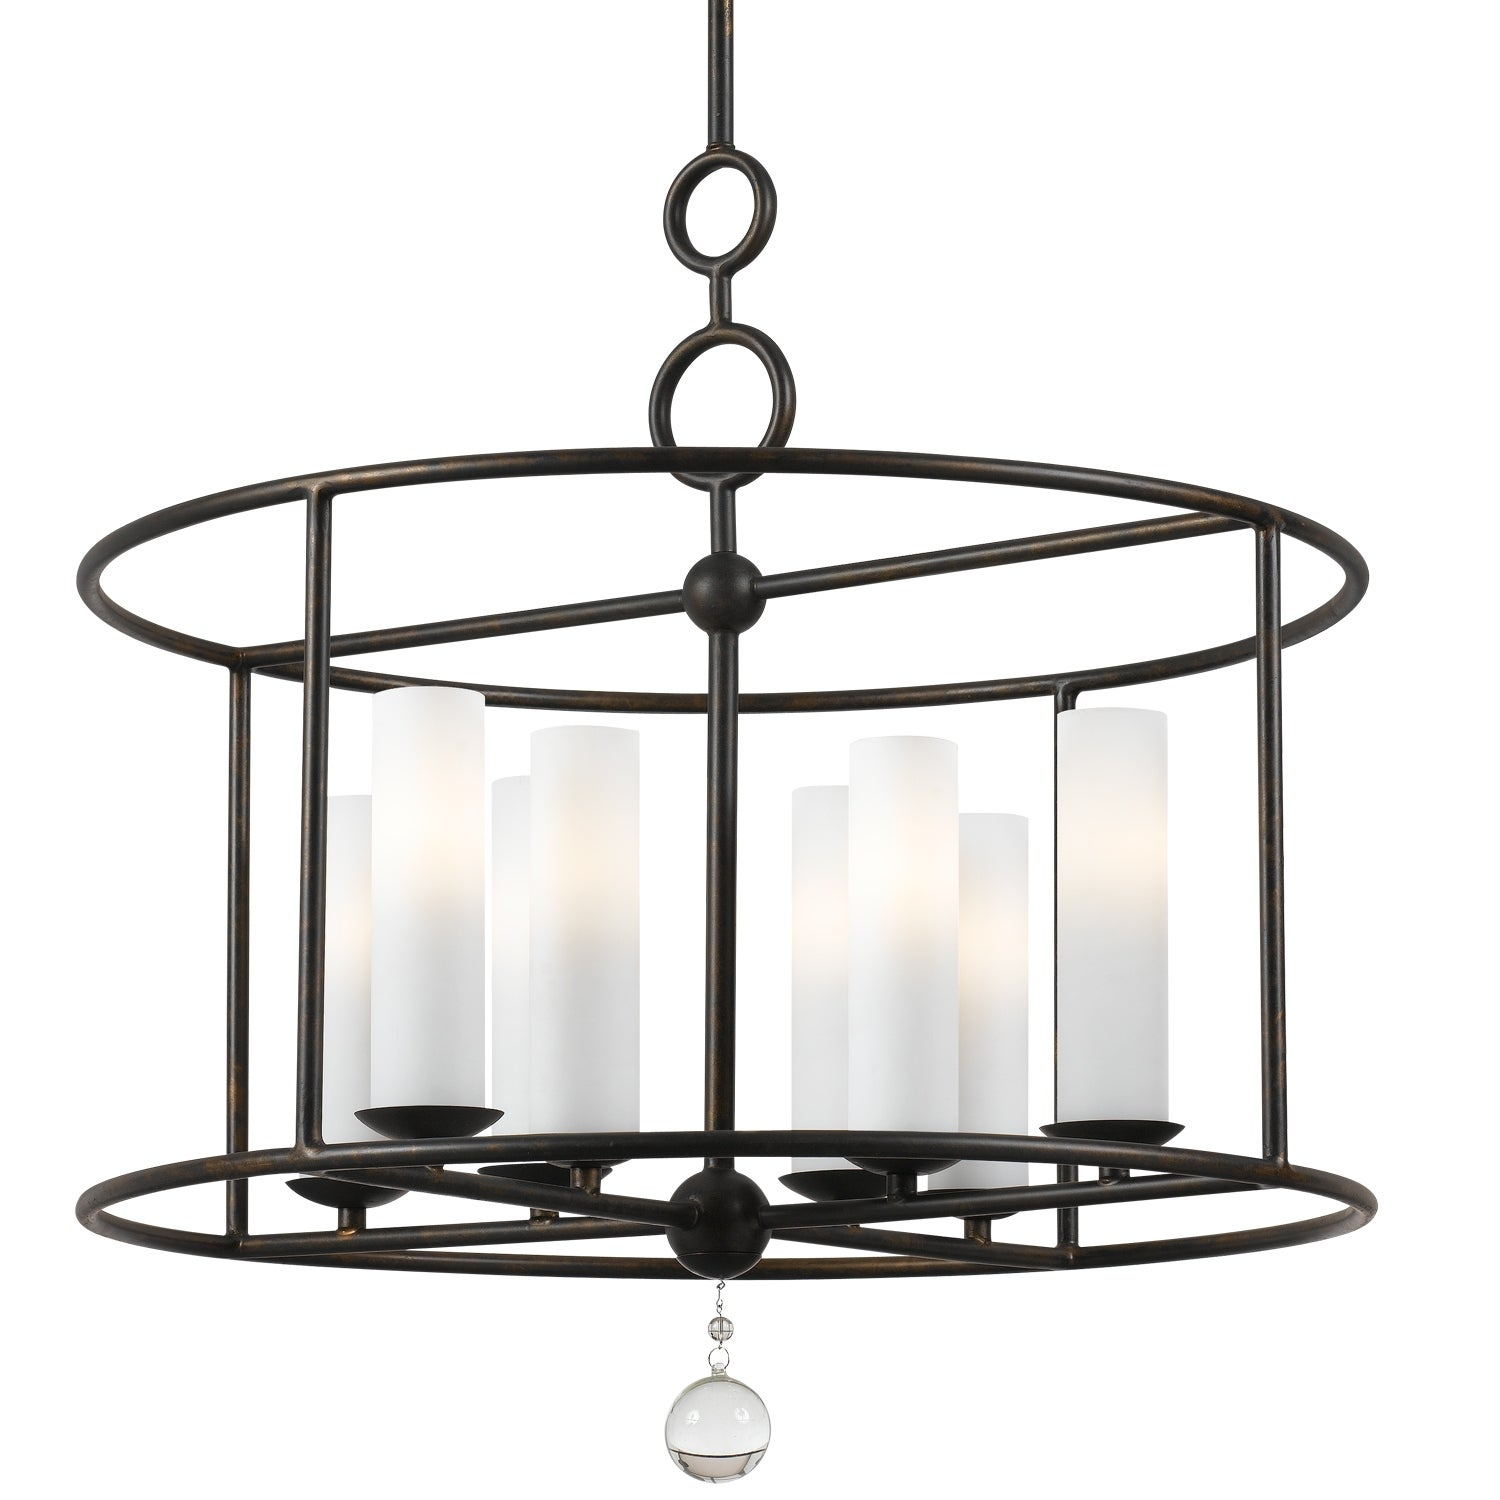 Cameron 8 Light Wrought Iron Chandelier 24 W X 24 75 H Overstock 7888857